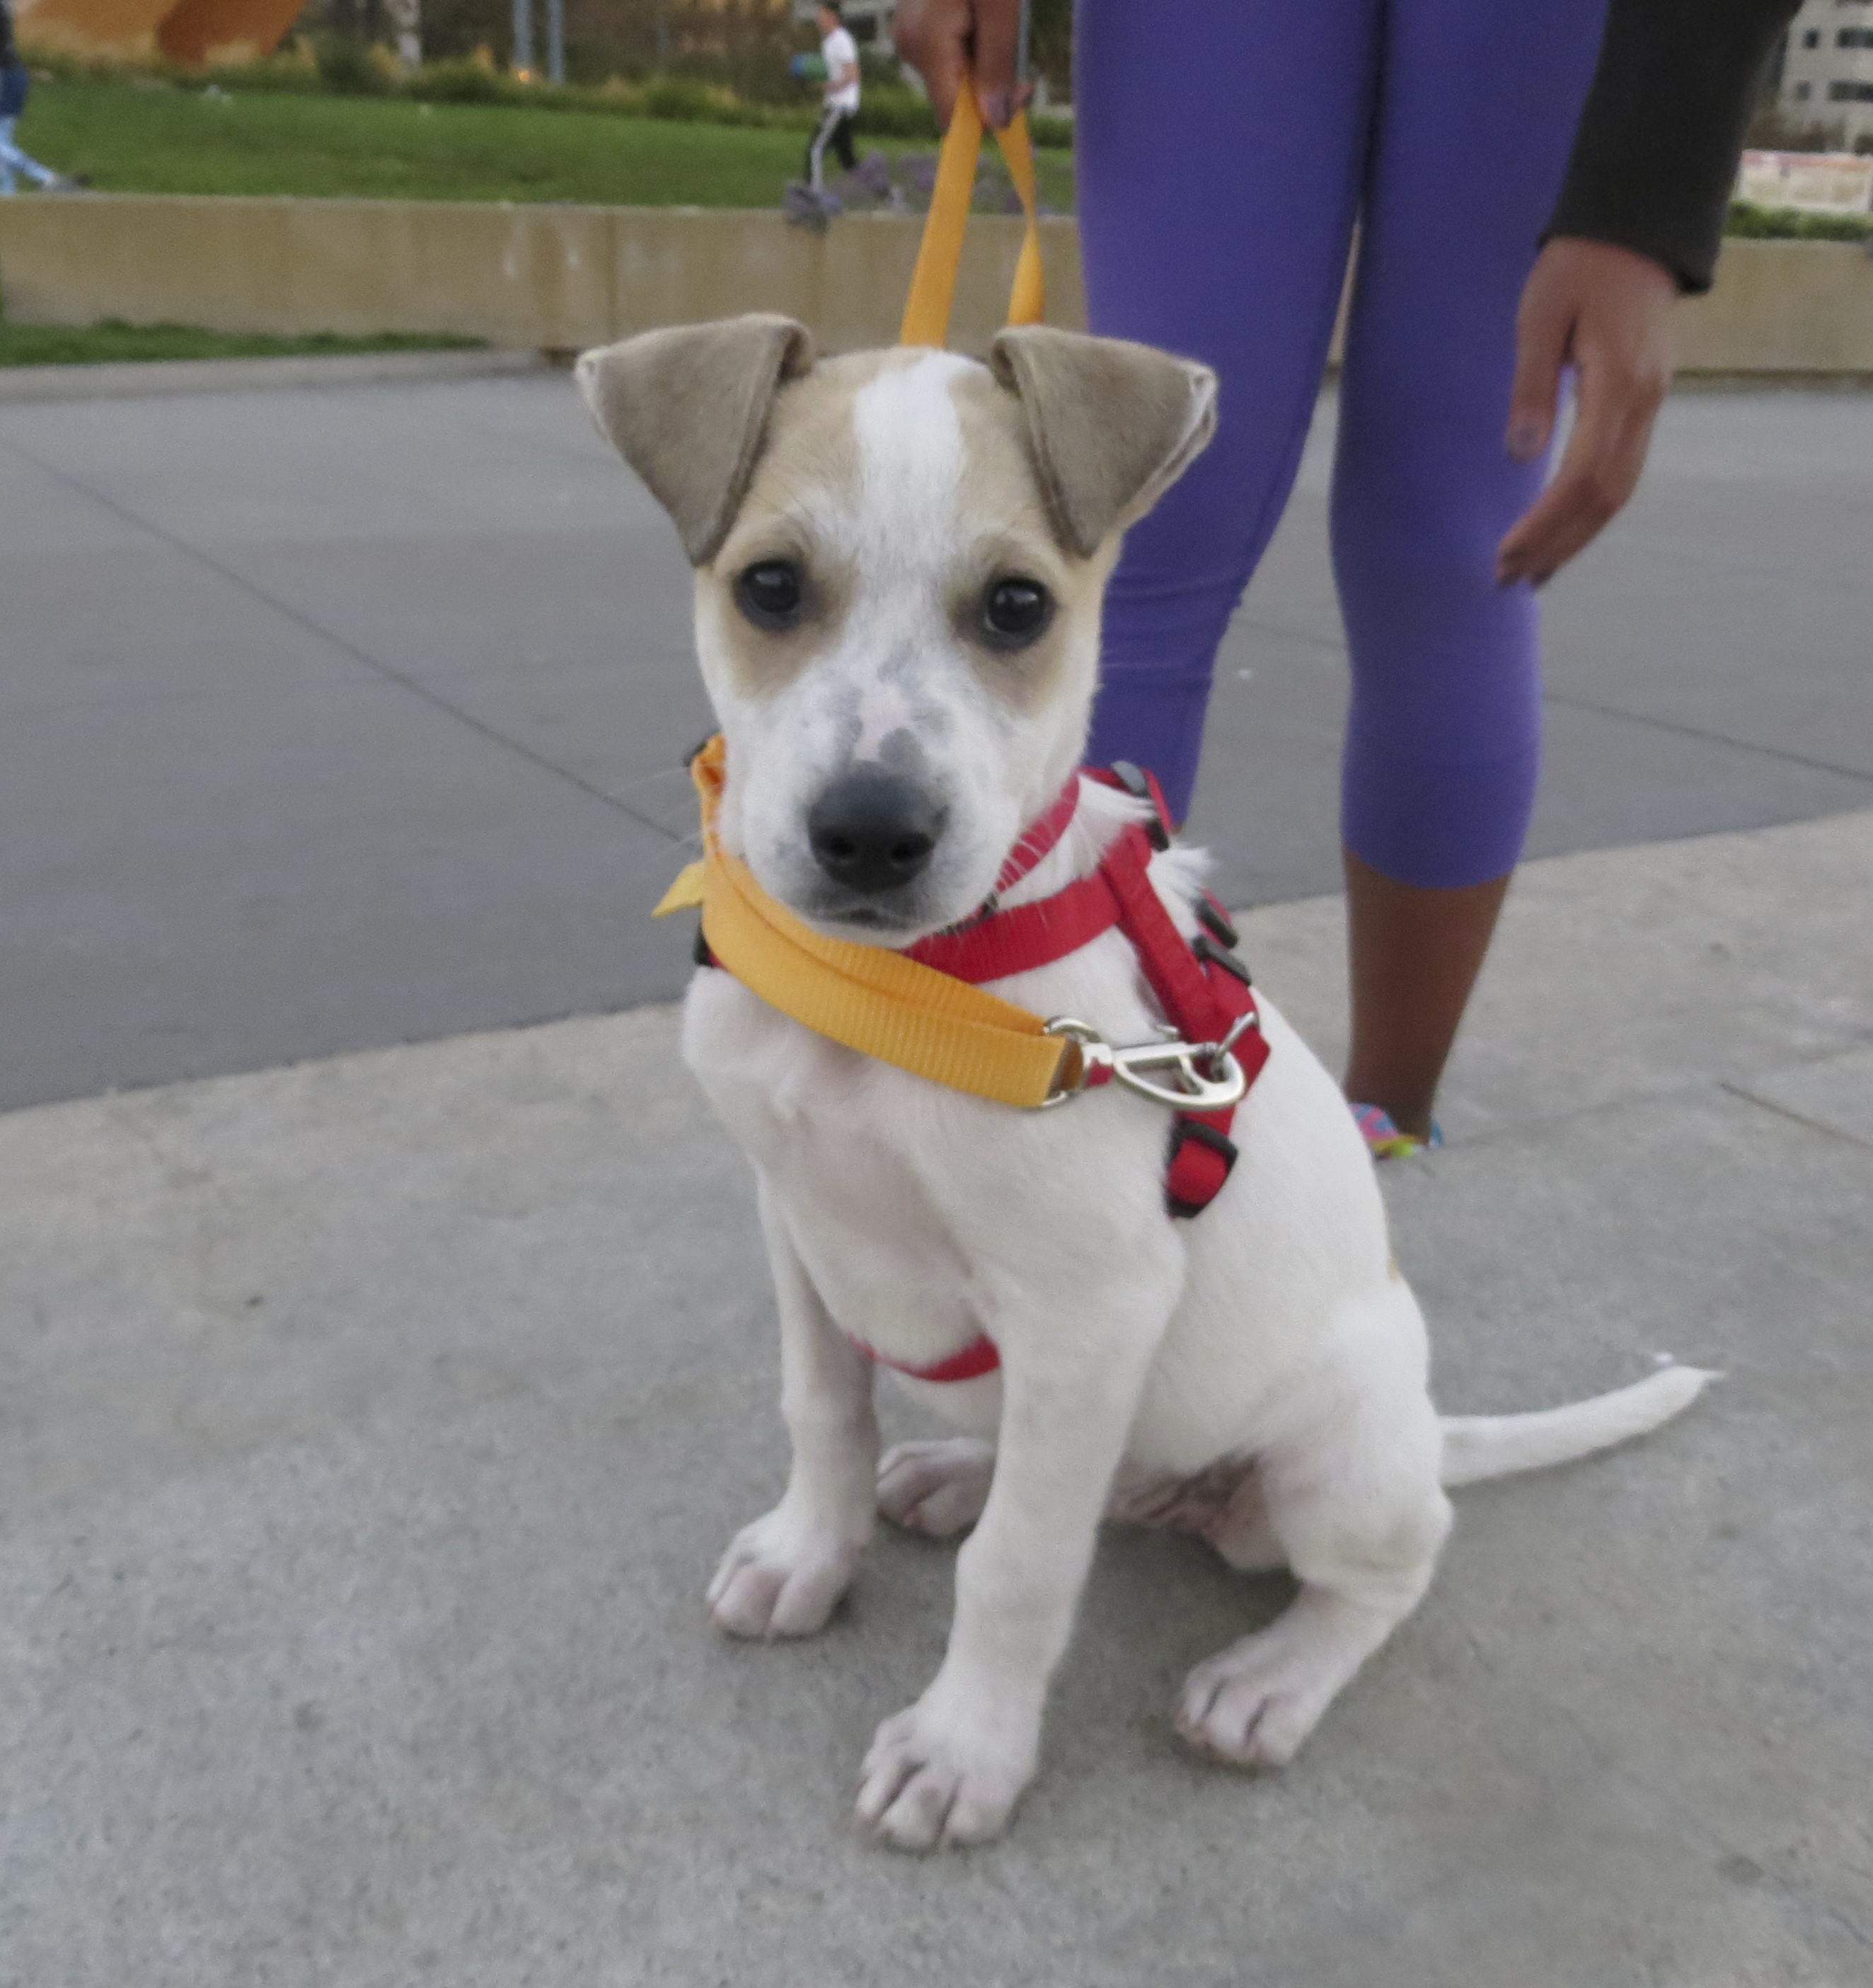 White-and-Tan Jack Russell Terrier Puppy